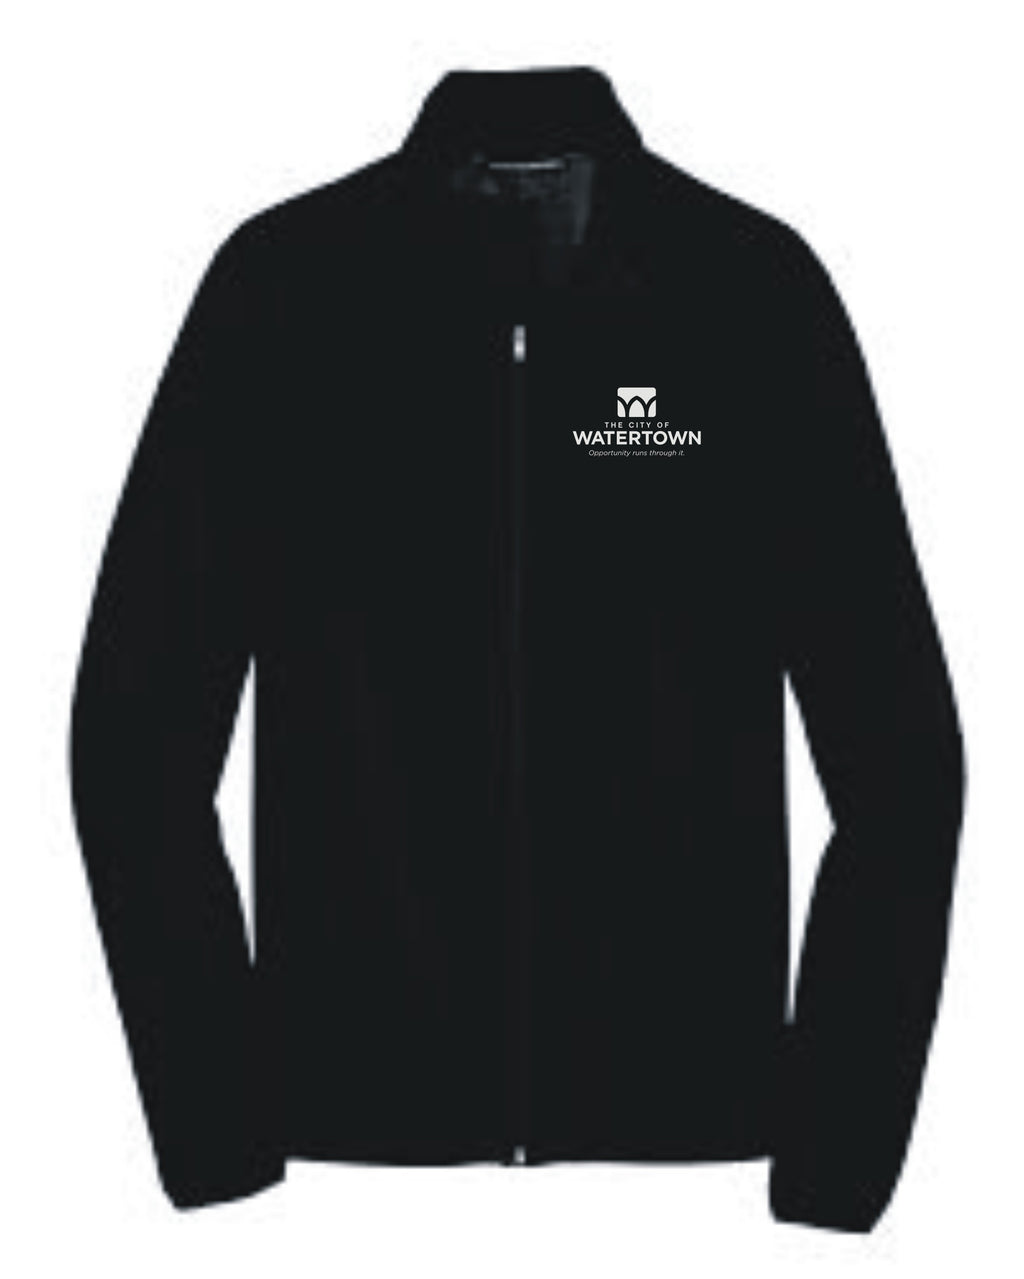 City of Watertown Active Soft Shell Jacket